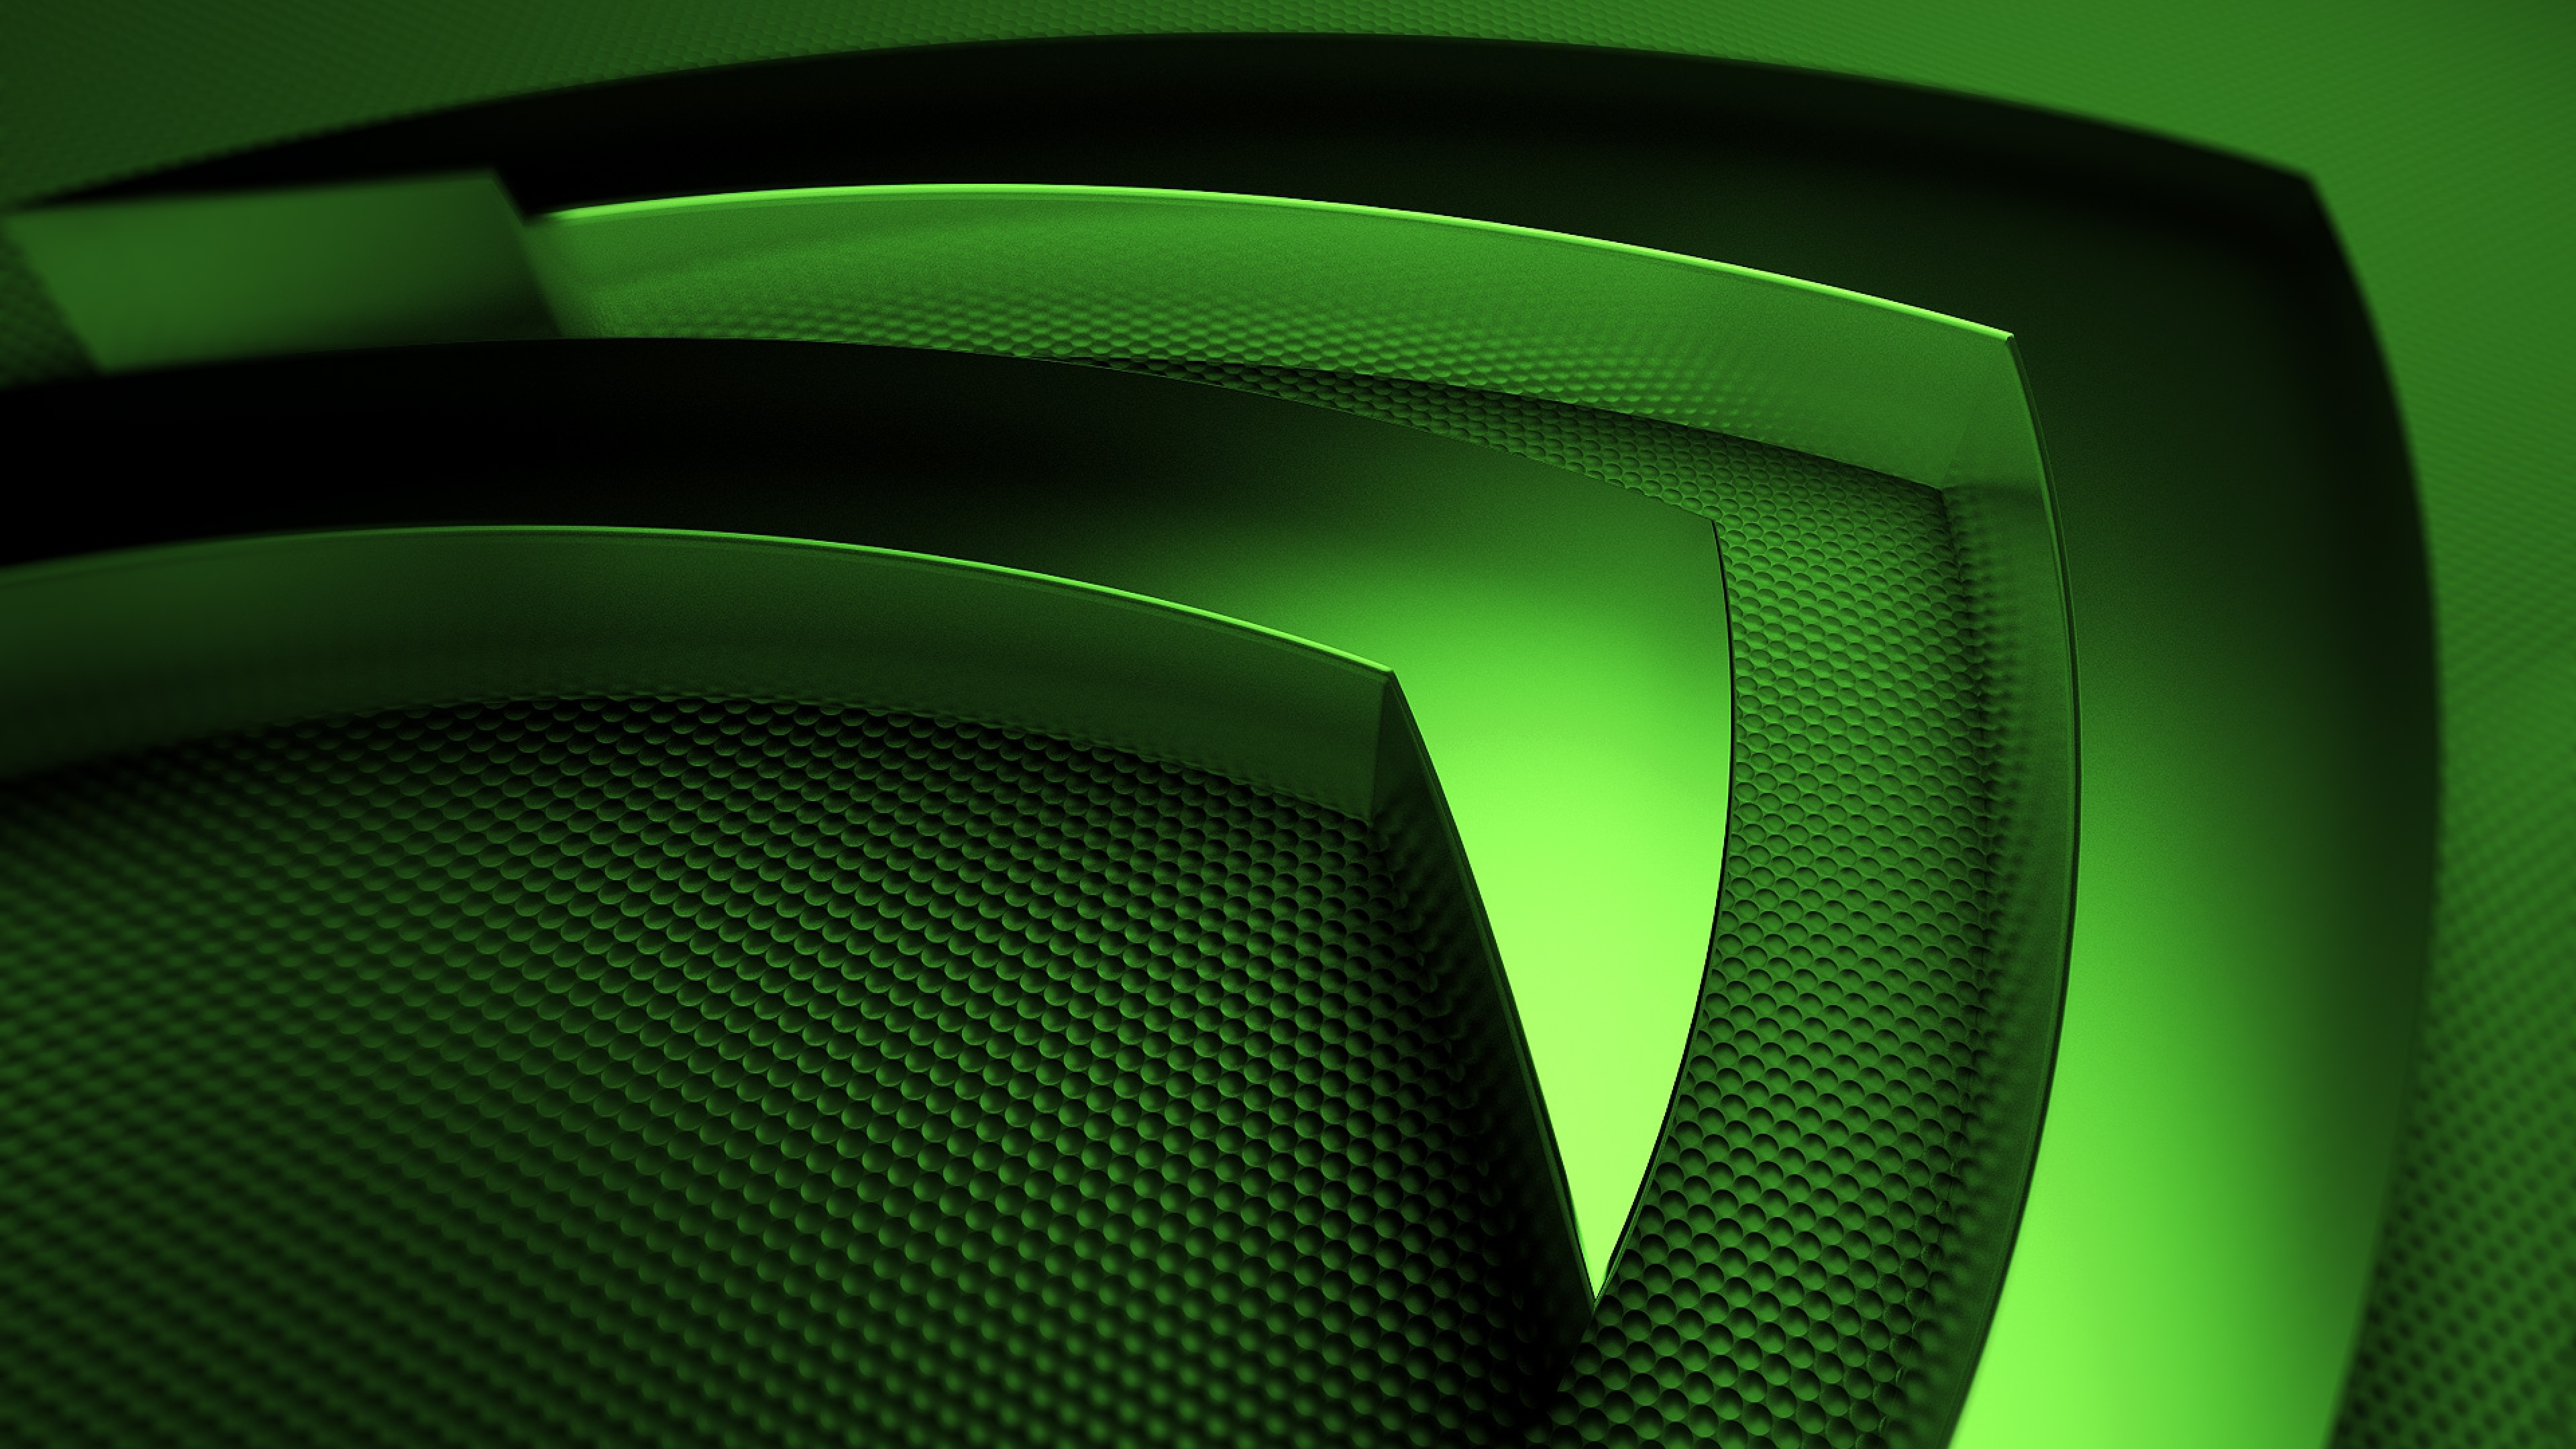 Wallpaper 3840x2160 nvidia green symbol 4K Ultra HD HD Background 3840x2160